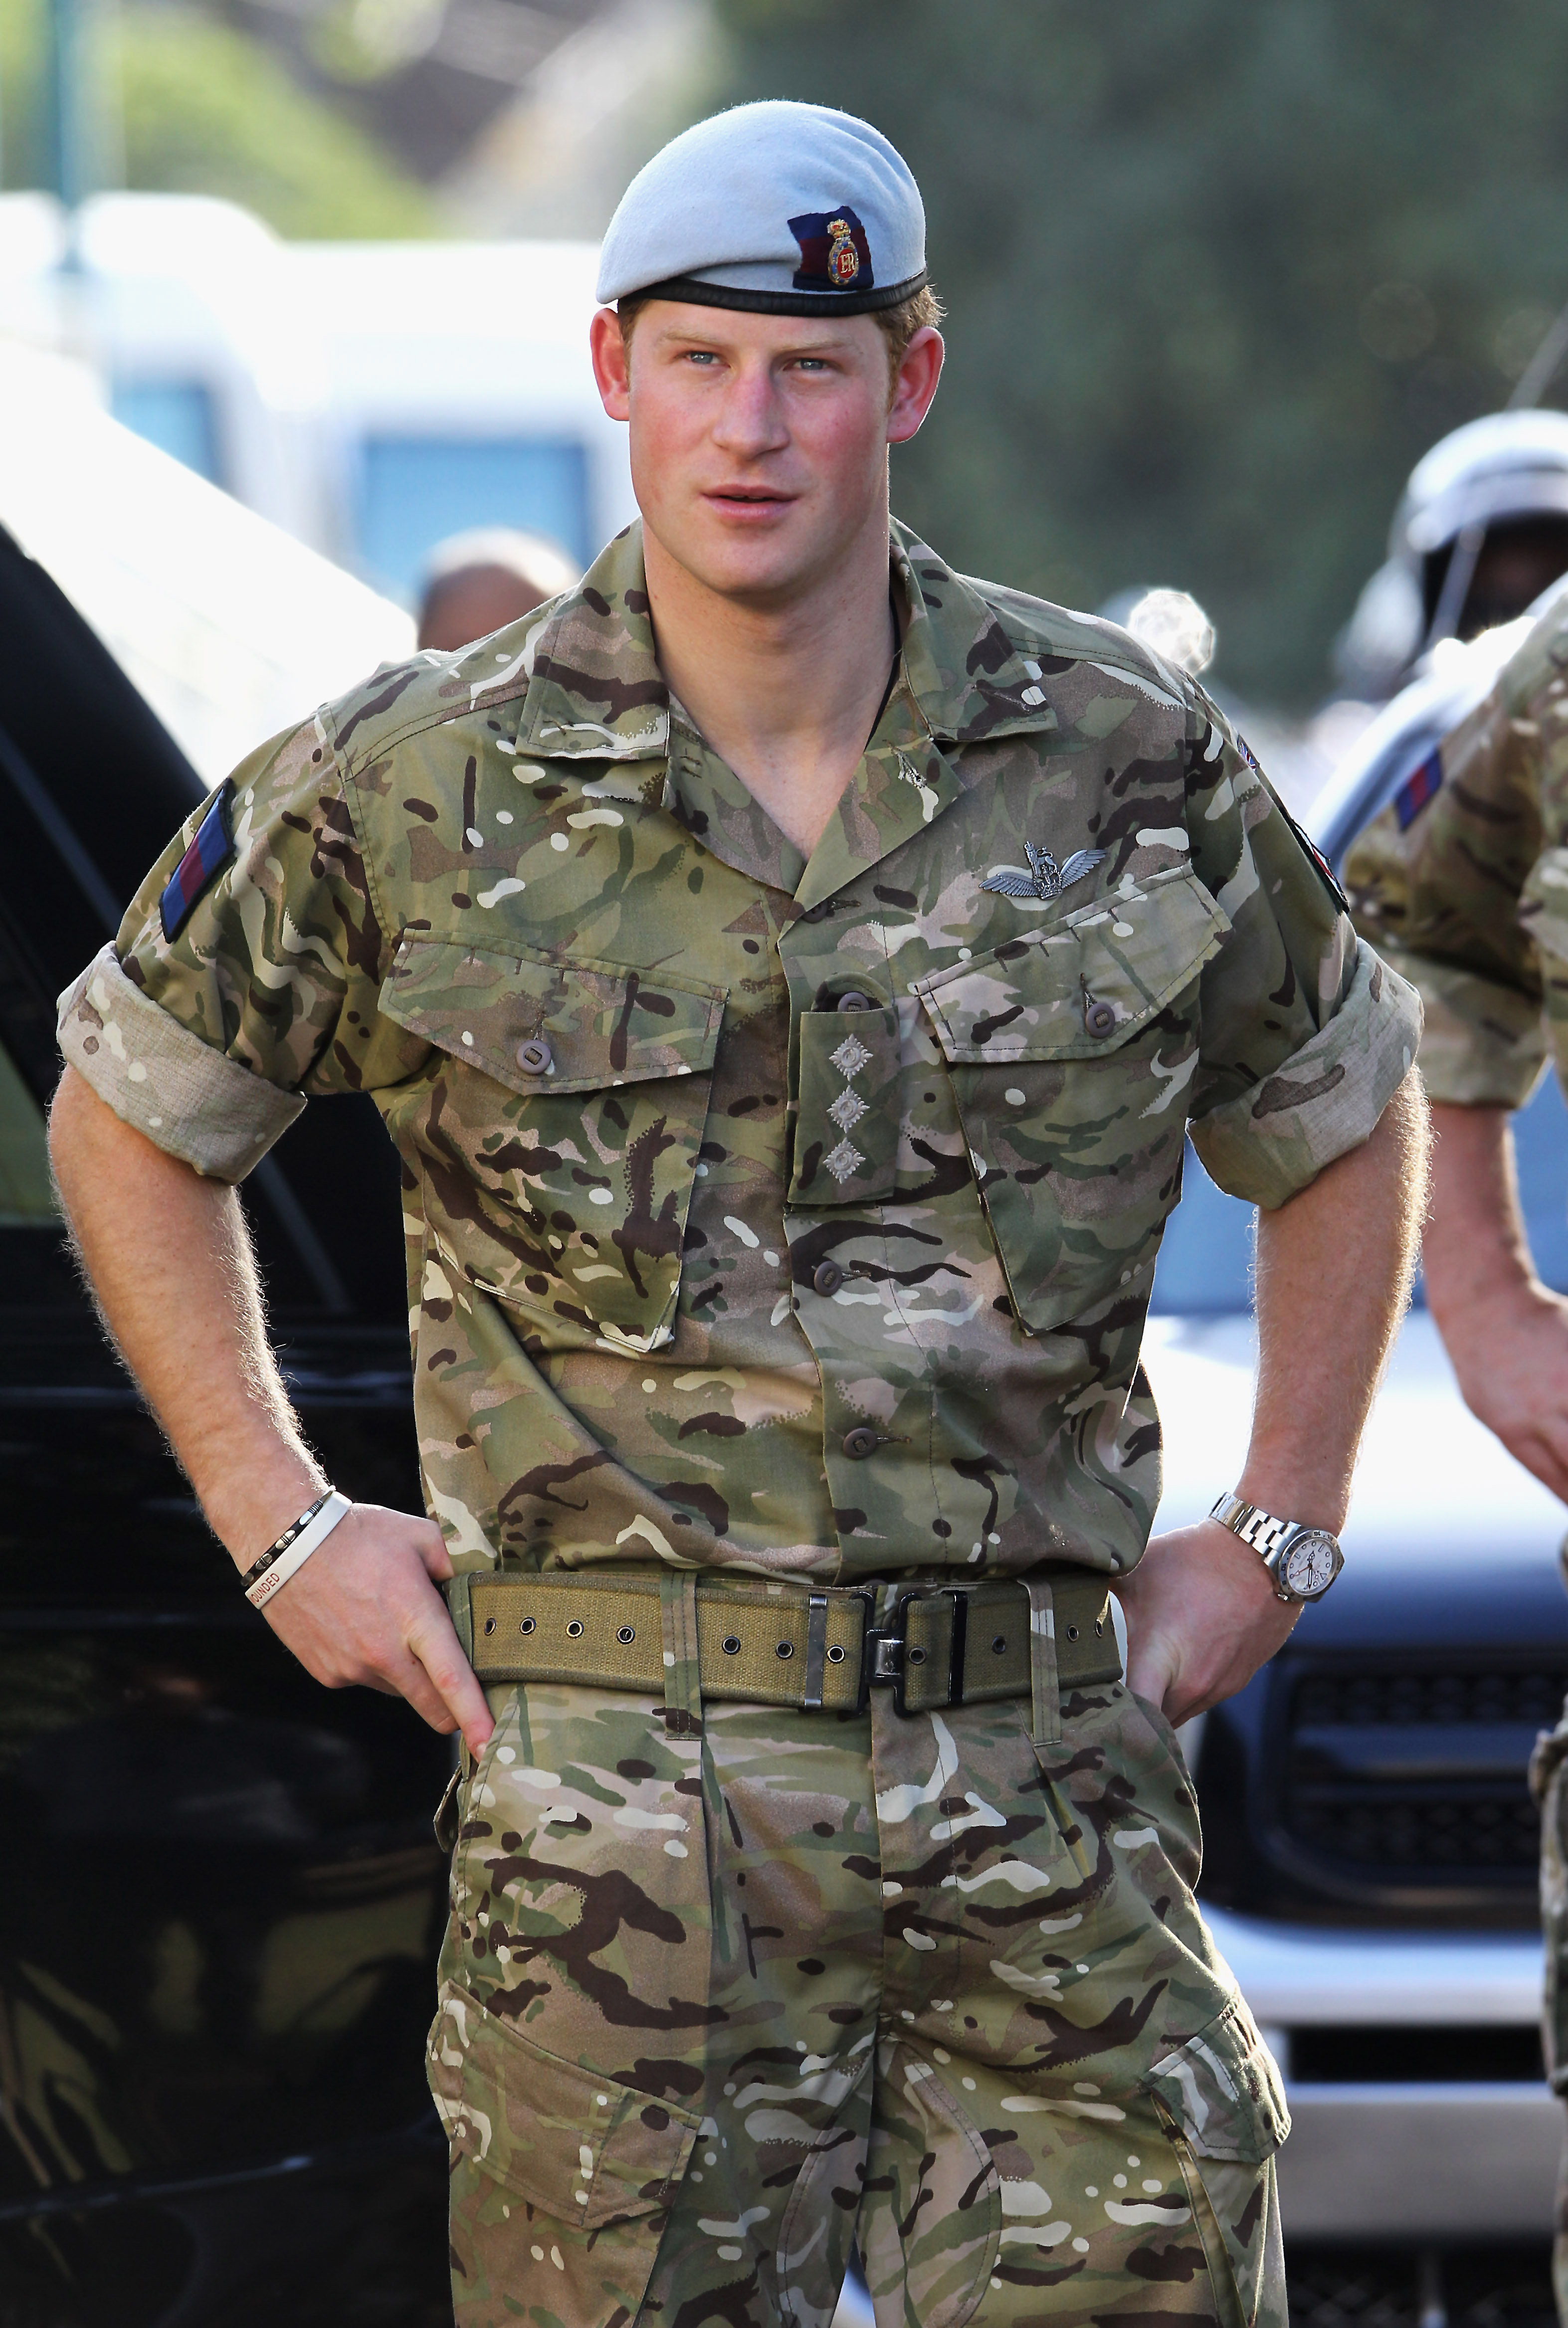 Prince Harry visits Up-Park Camp on March 7, 2012 in Kingston, Jamaica. Prince Harry was in Jamaica as part of a Diamond Jubilee Tour, representing Queen Elizabeth.